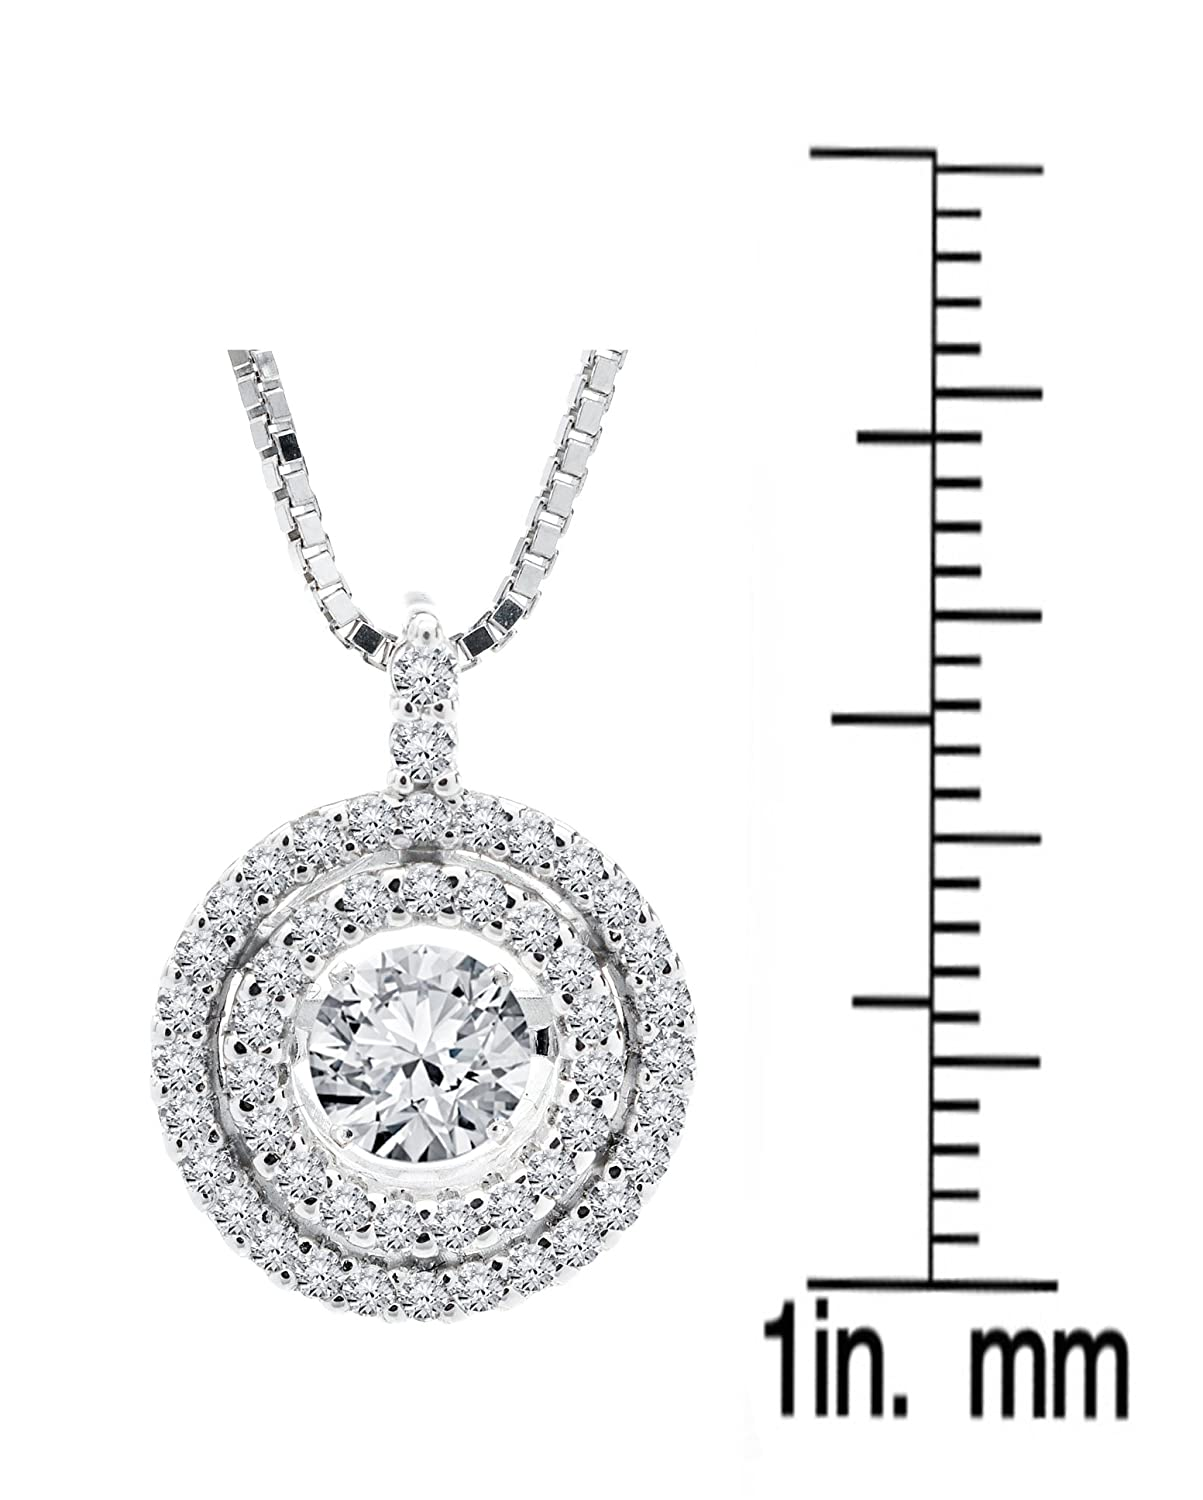 SERAFINA Women s Double Halo White Sapphire Pendant Necklace 925 Sterling Silver Dancing White Sapphire on 18 Chain Beautiful Gift for Her